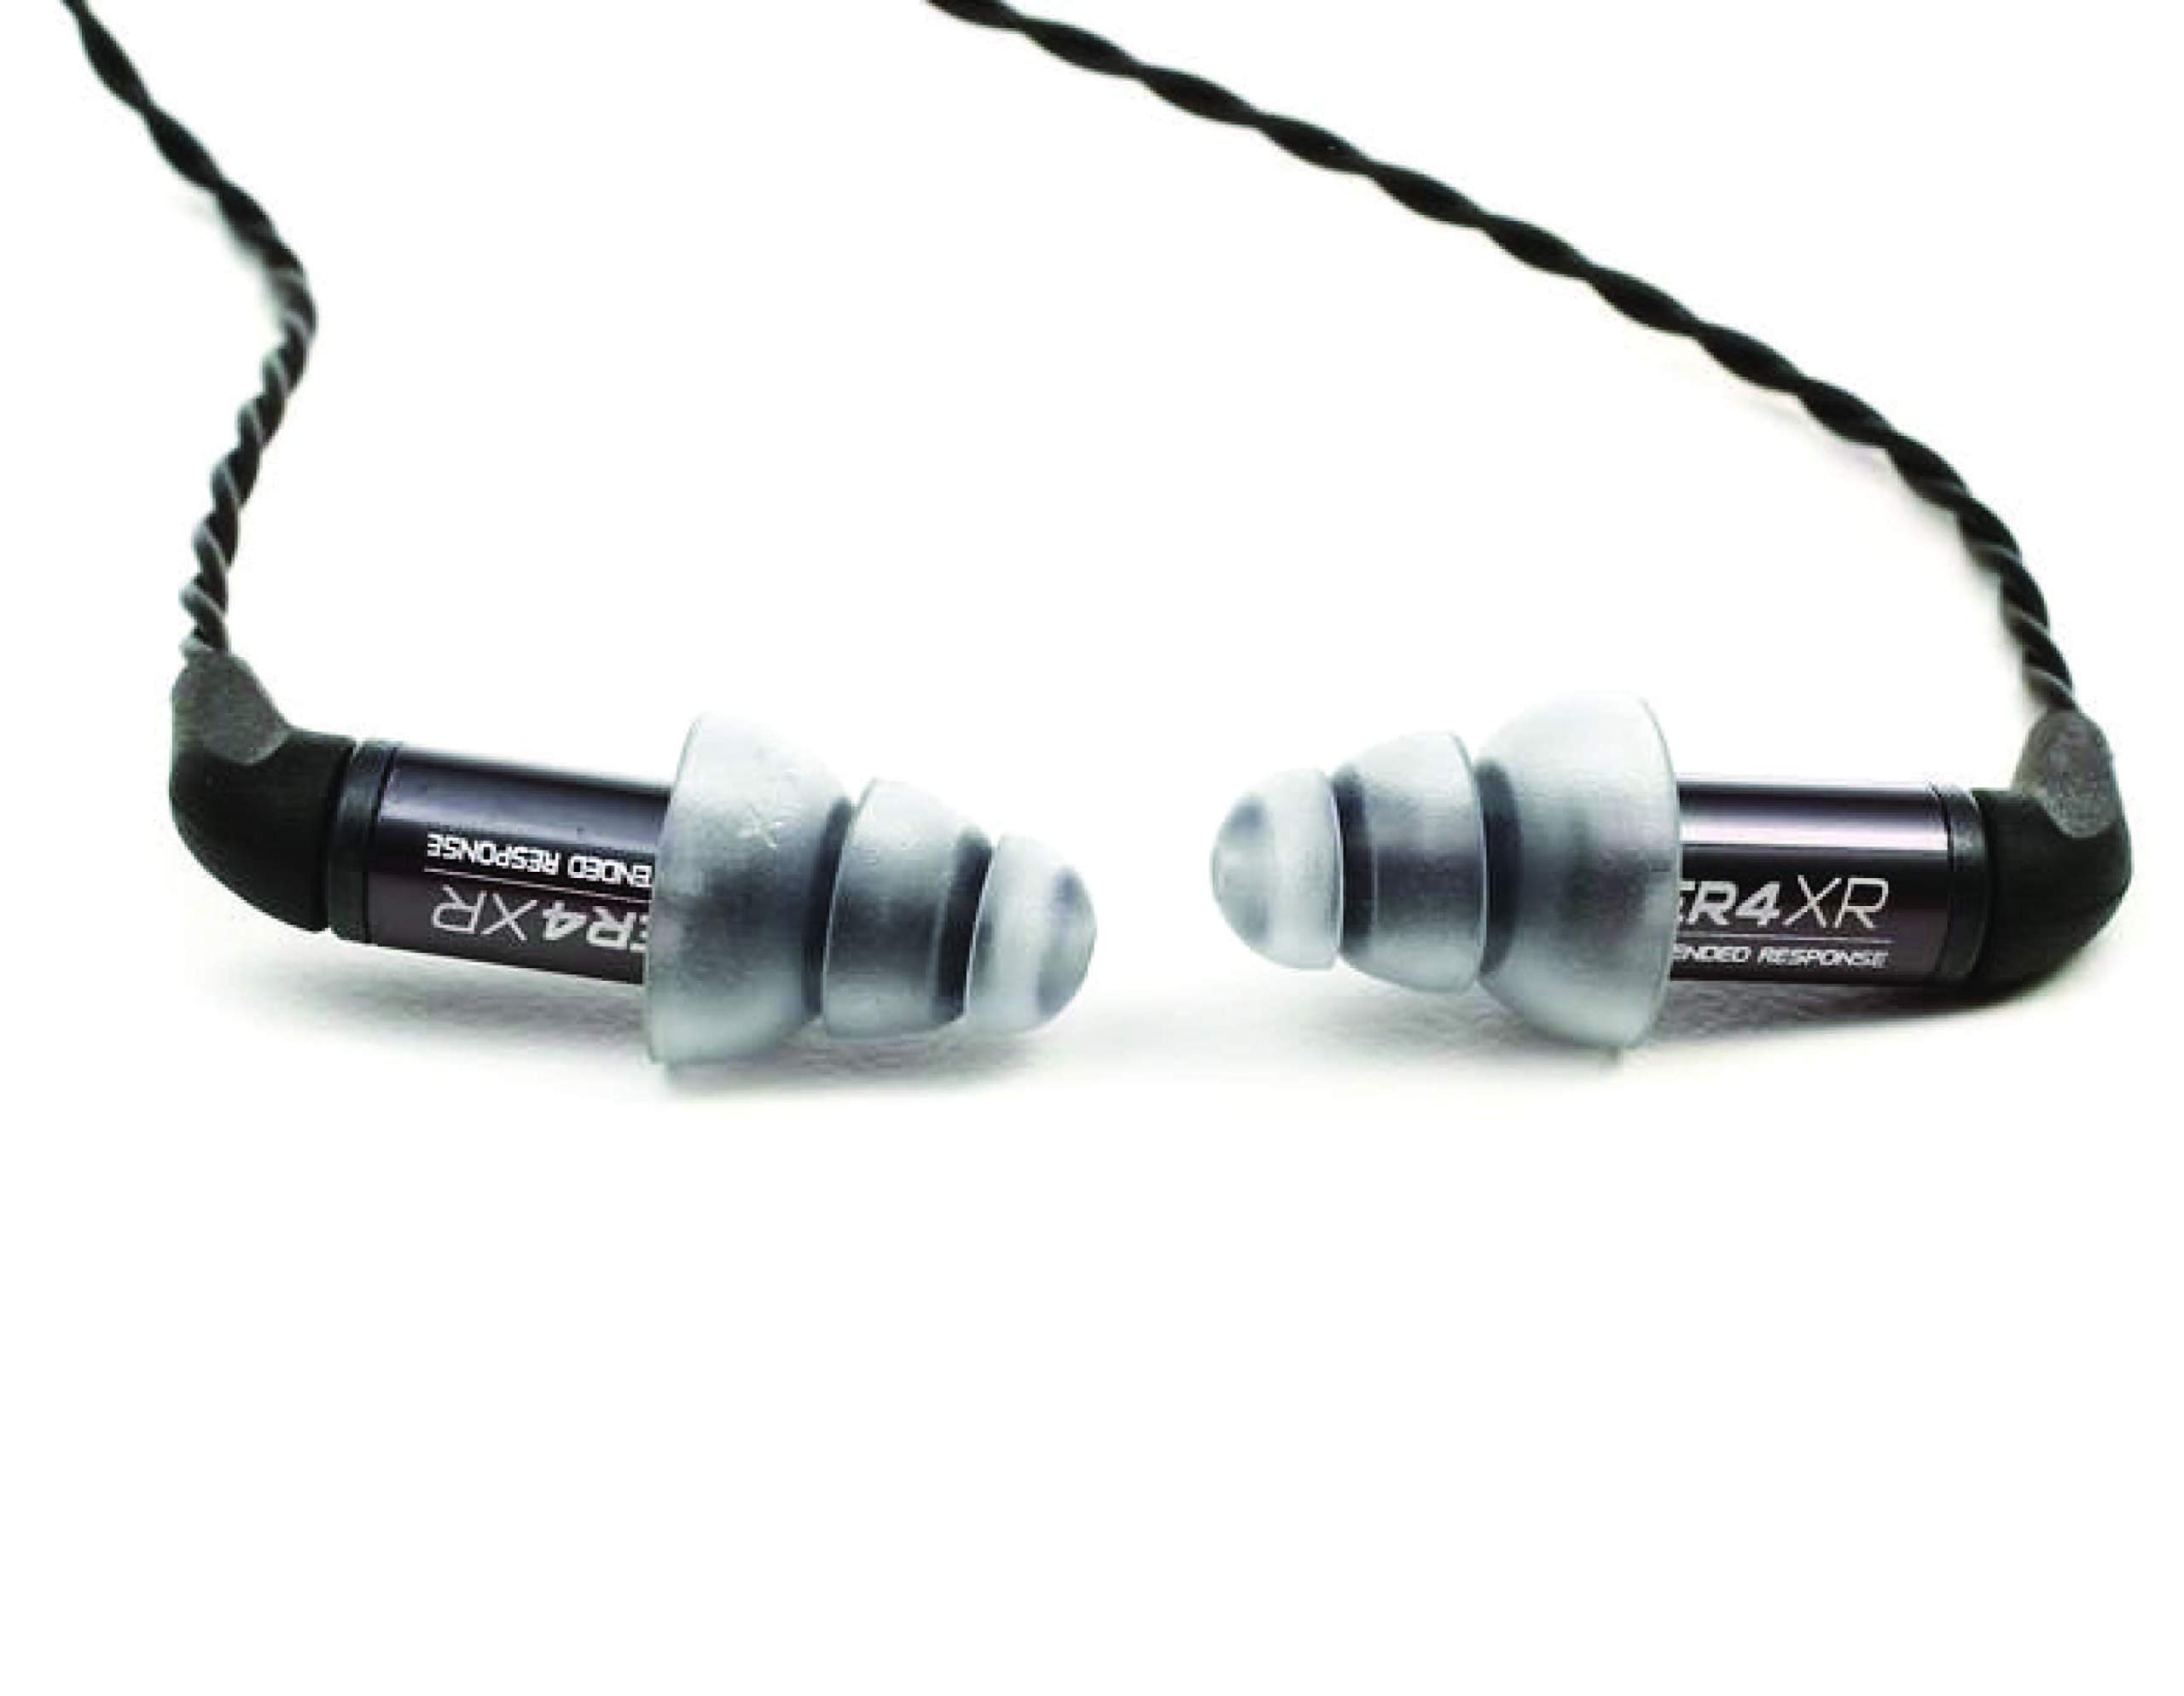 Etymotic Research ER4XR Extended Response Precision Matched In-Ear Earphones (Detachable Balanced Armature Drivers, Noise Isolating, High Fidelity, World Leader Response Accuracy) , Black , Standard